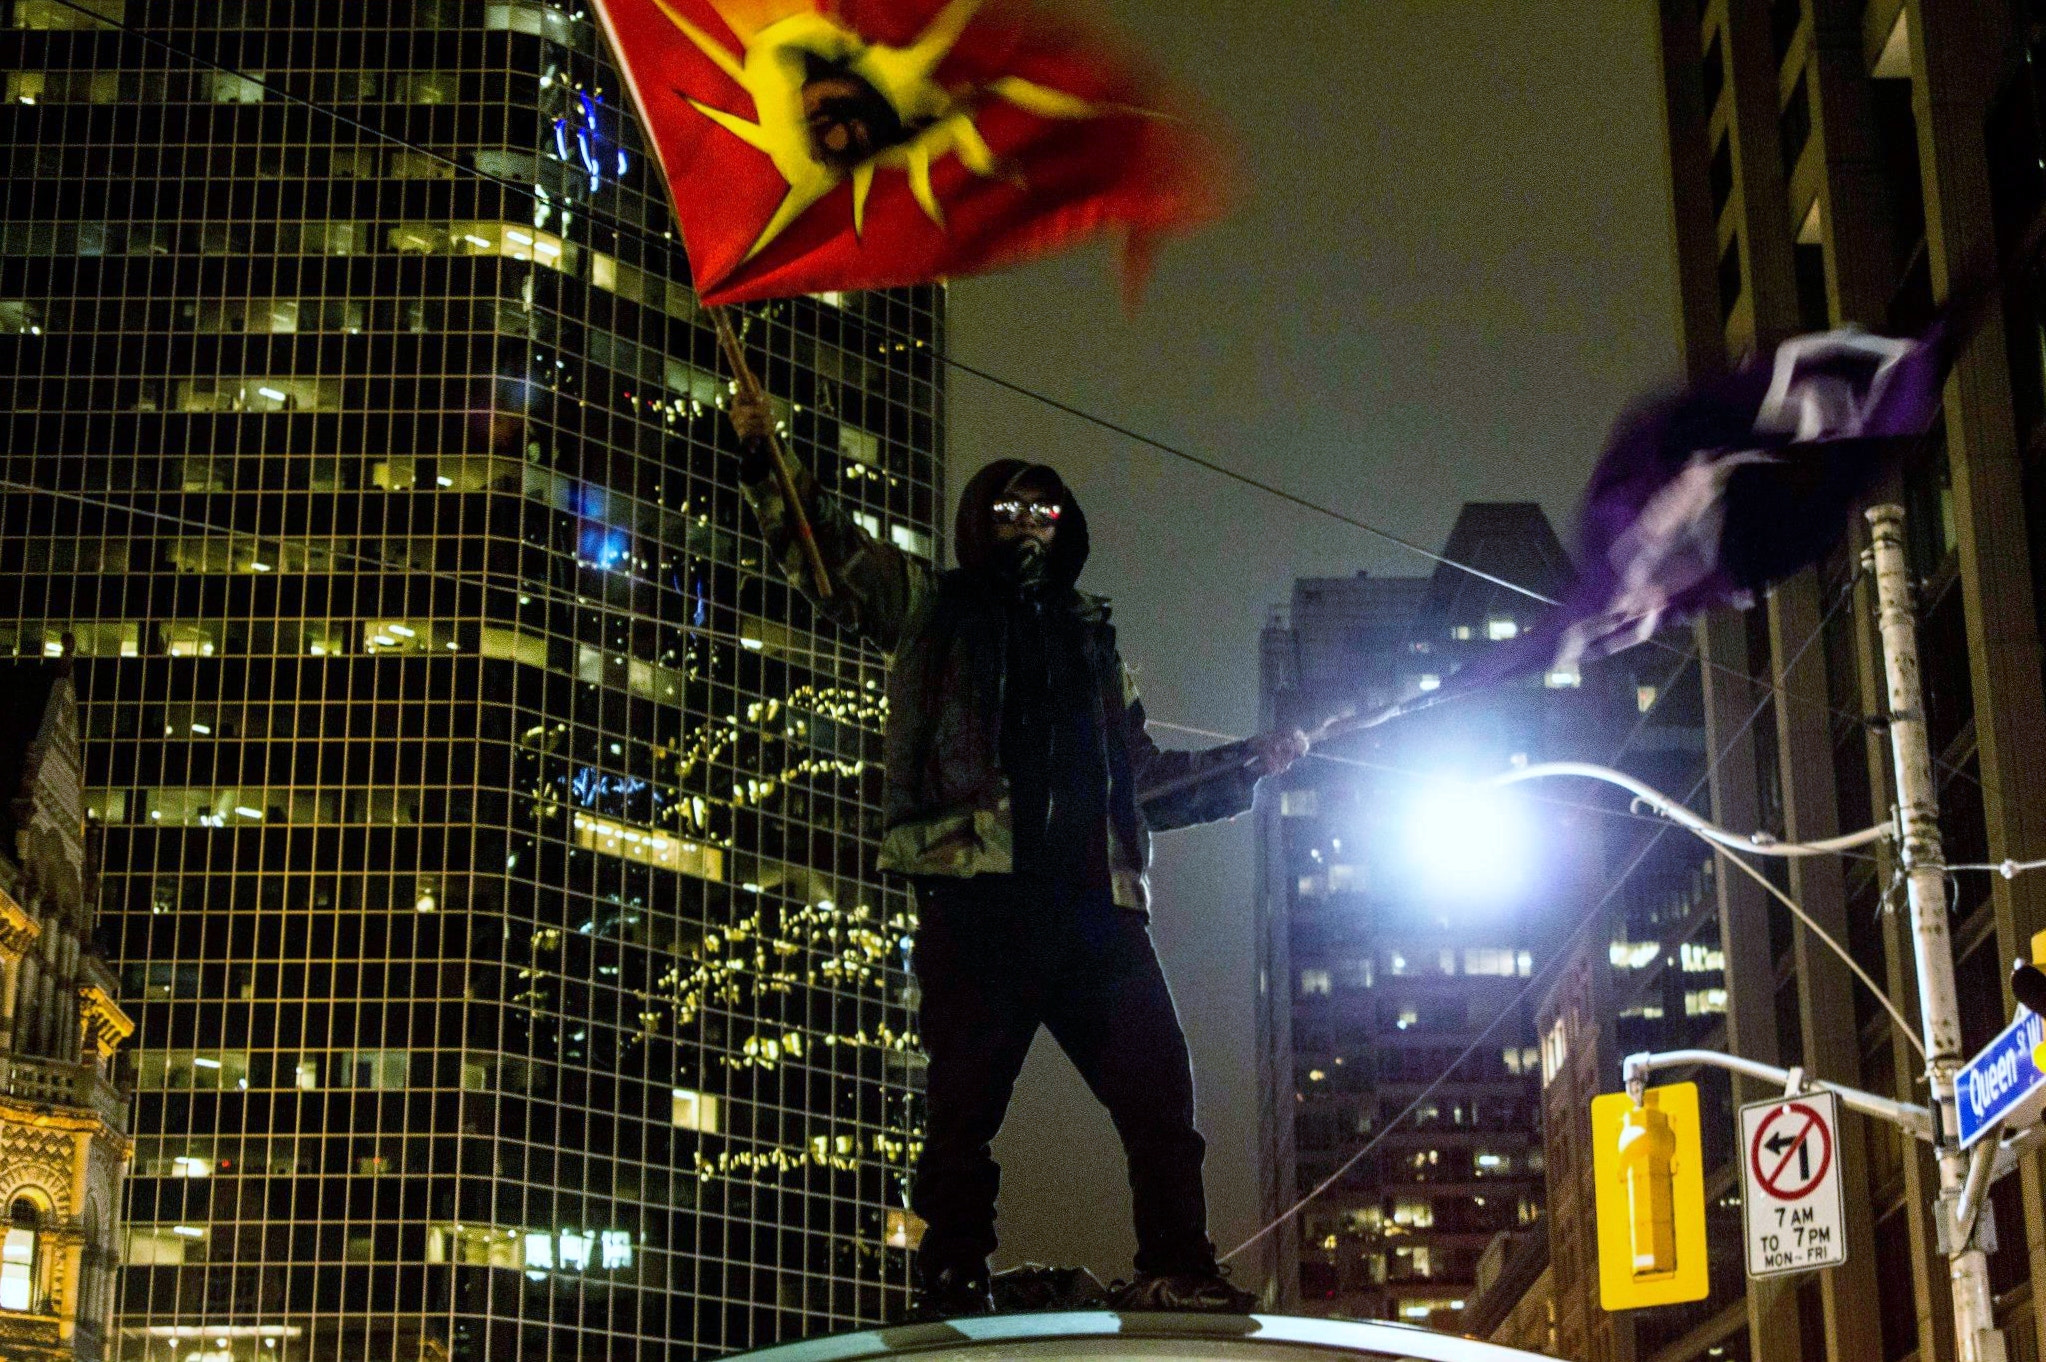 Photograph Idle no more protester by David Chu on 500px